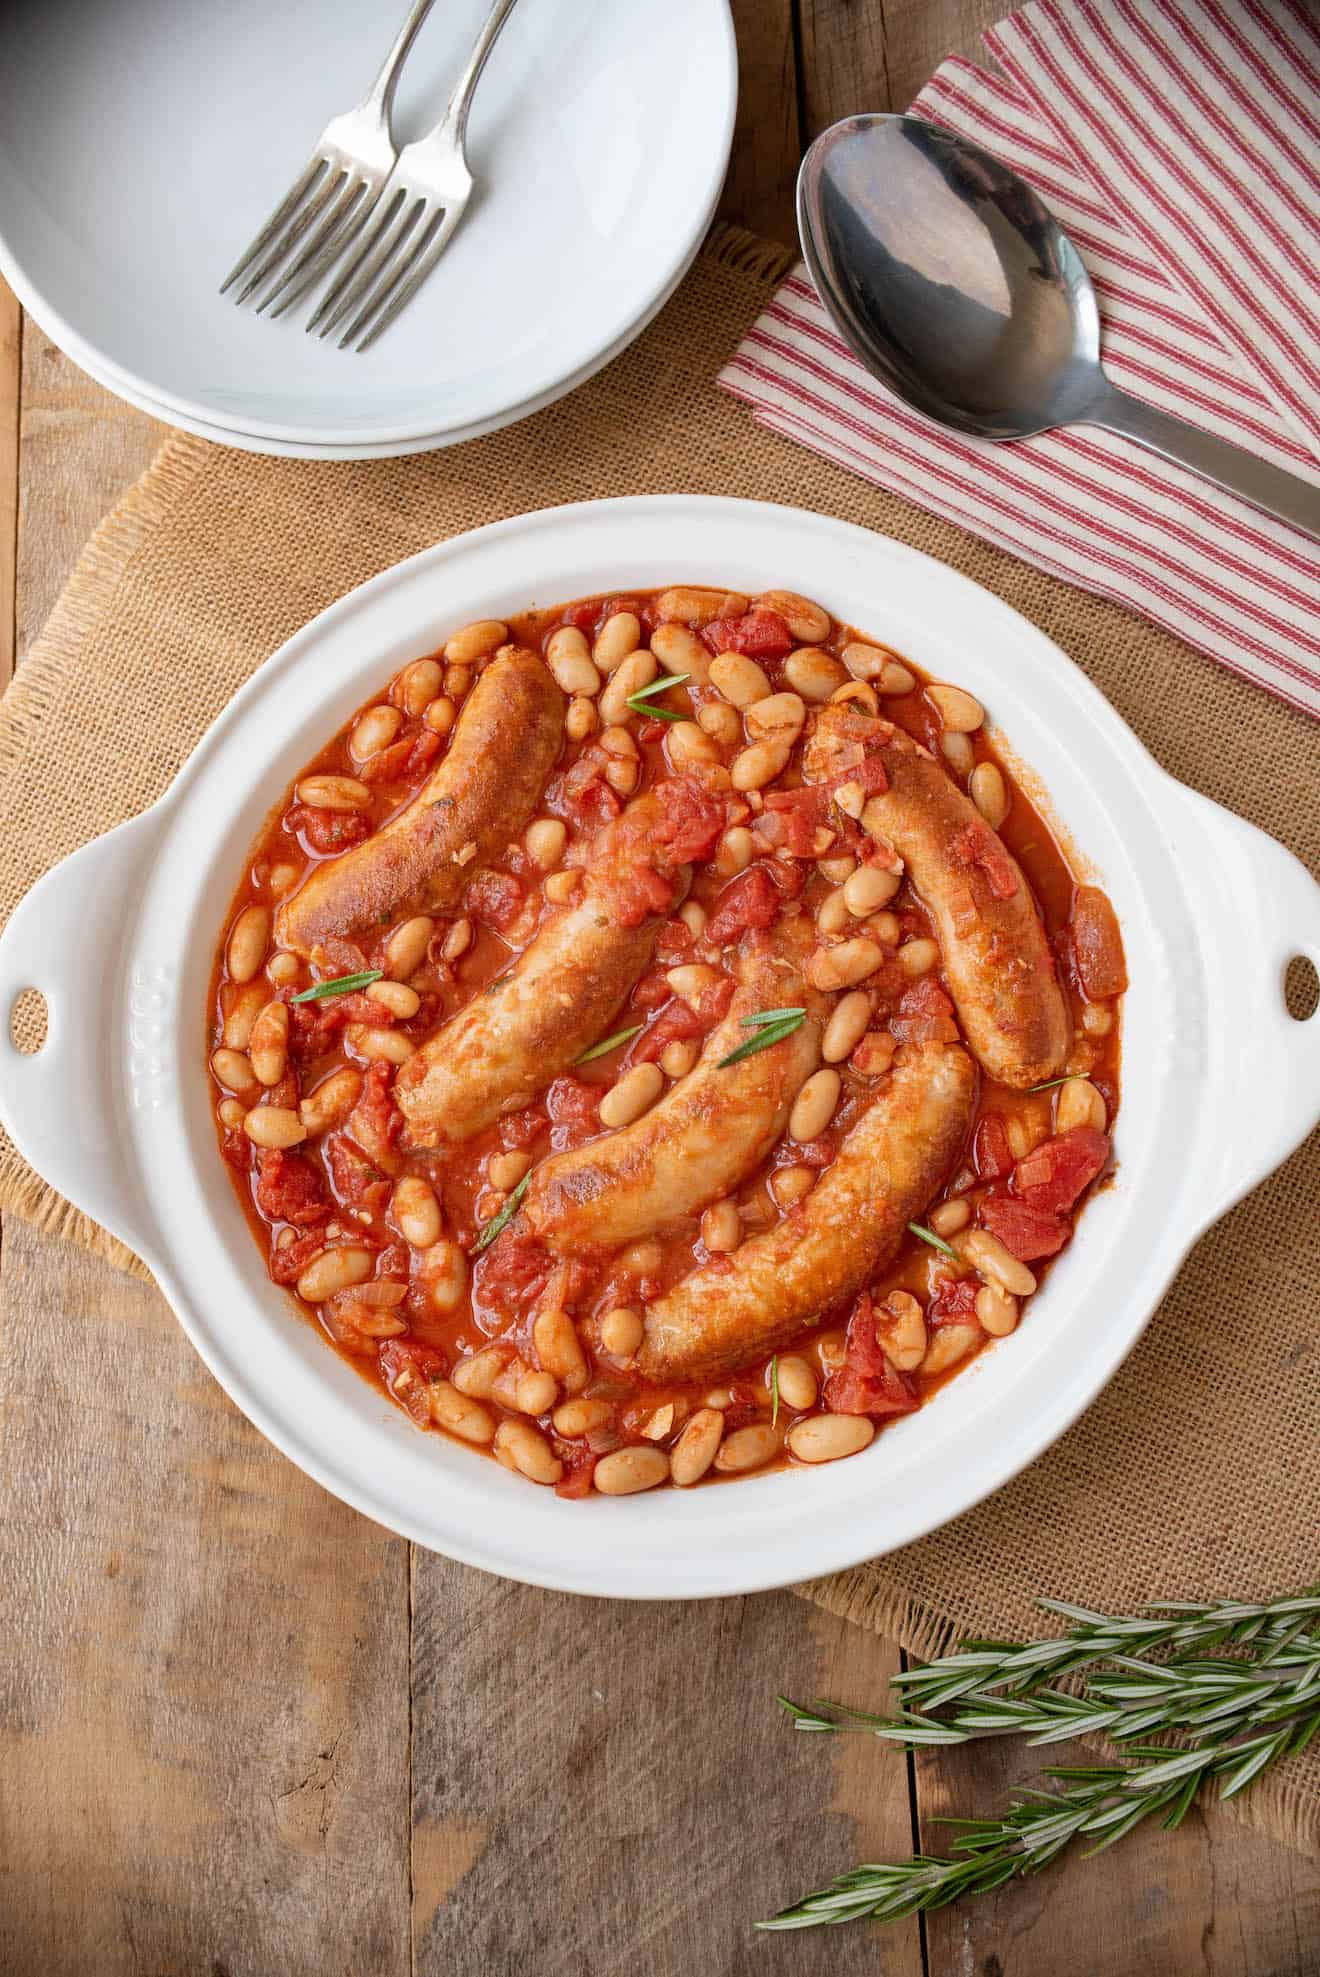 Italian sausage and beans from overhead